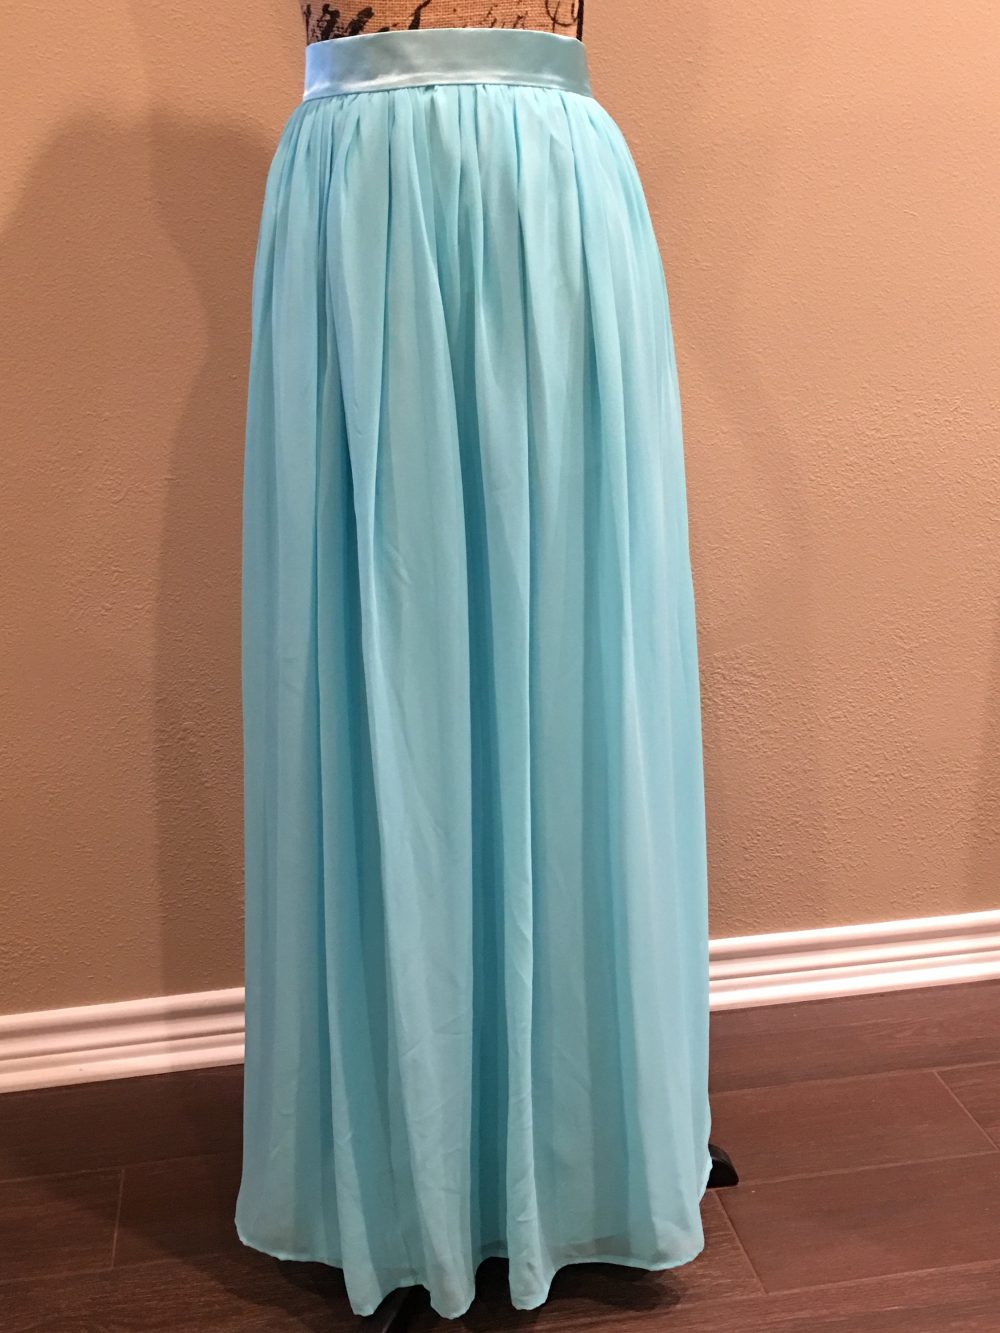 Aqua Green Skirt Chiffon Maxi Beach Wedding Bridesmaid Dresses Womens Custom Long Prom Dress